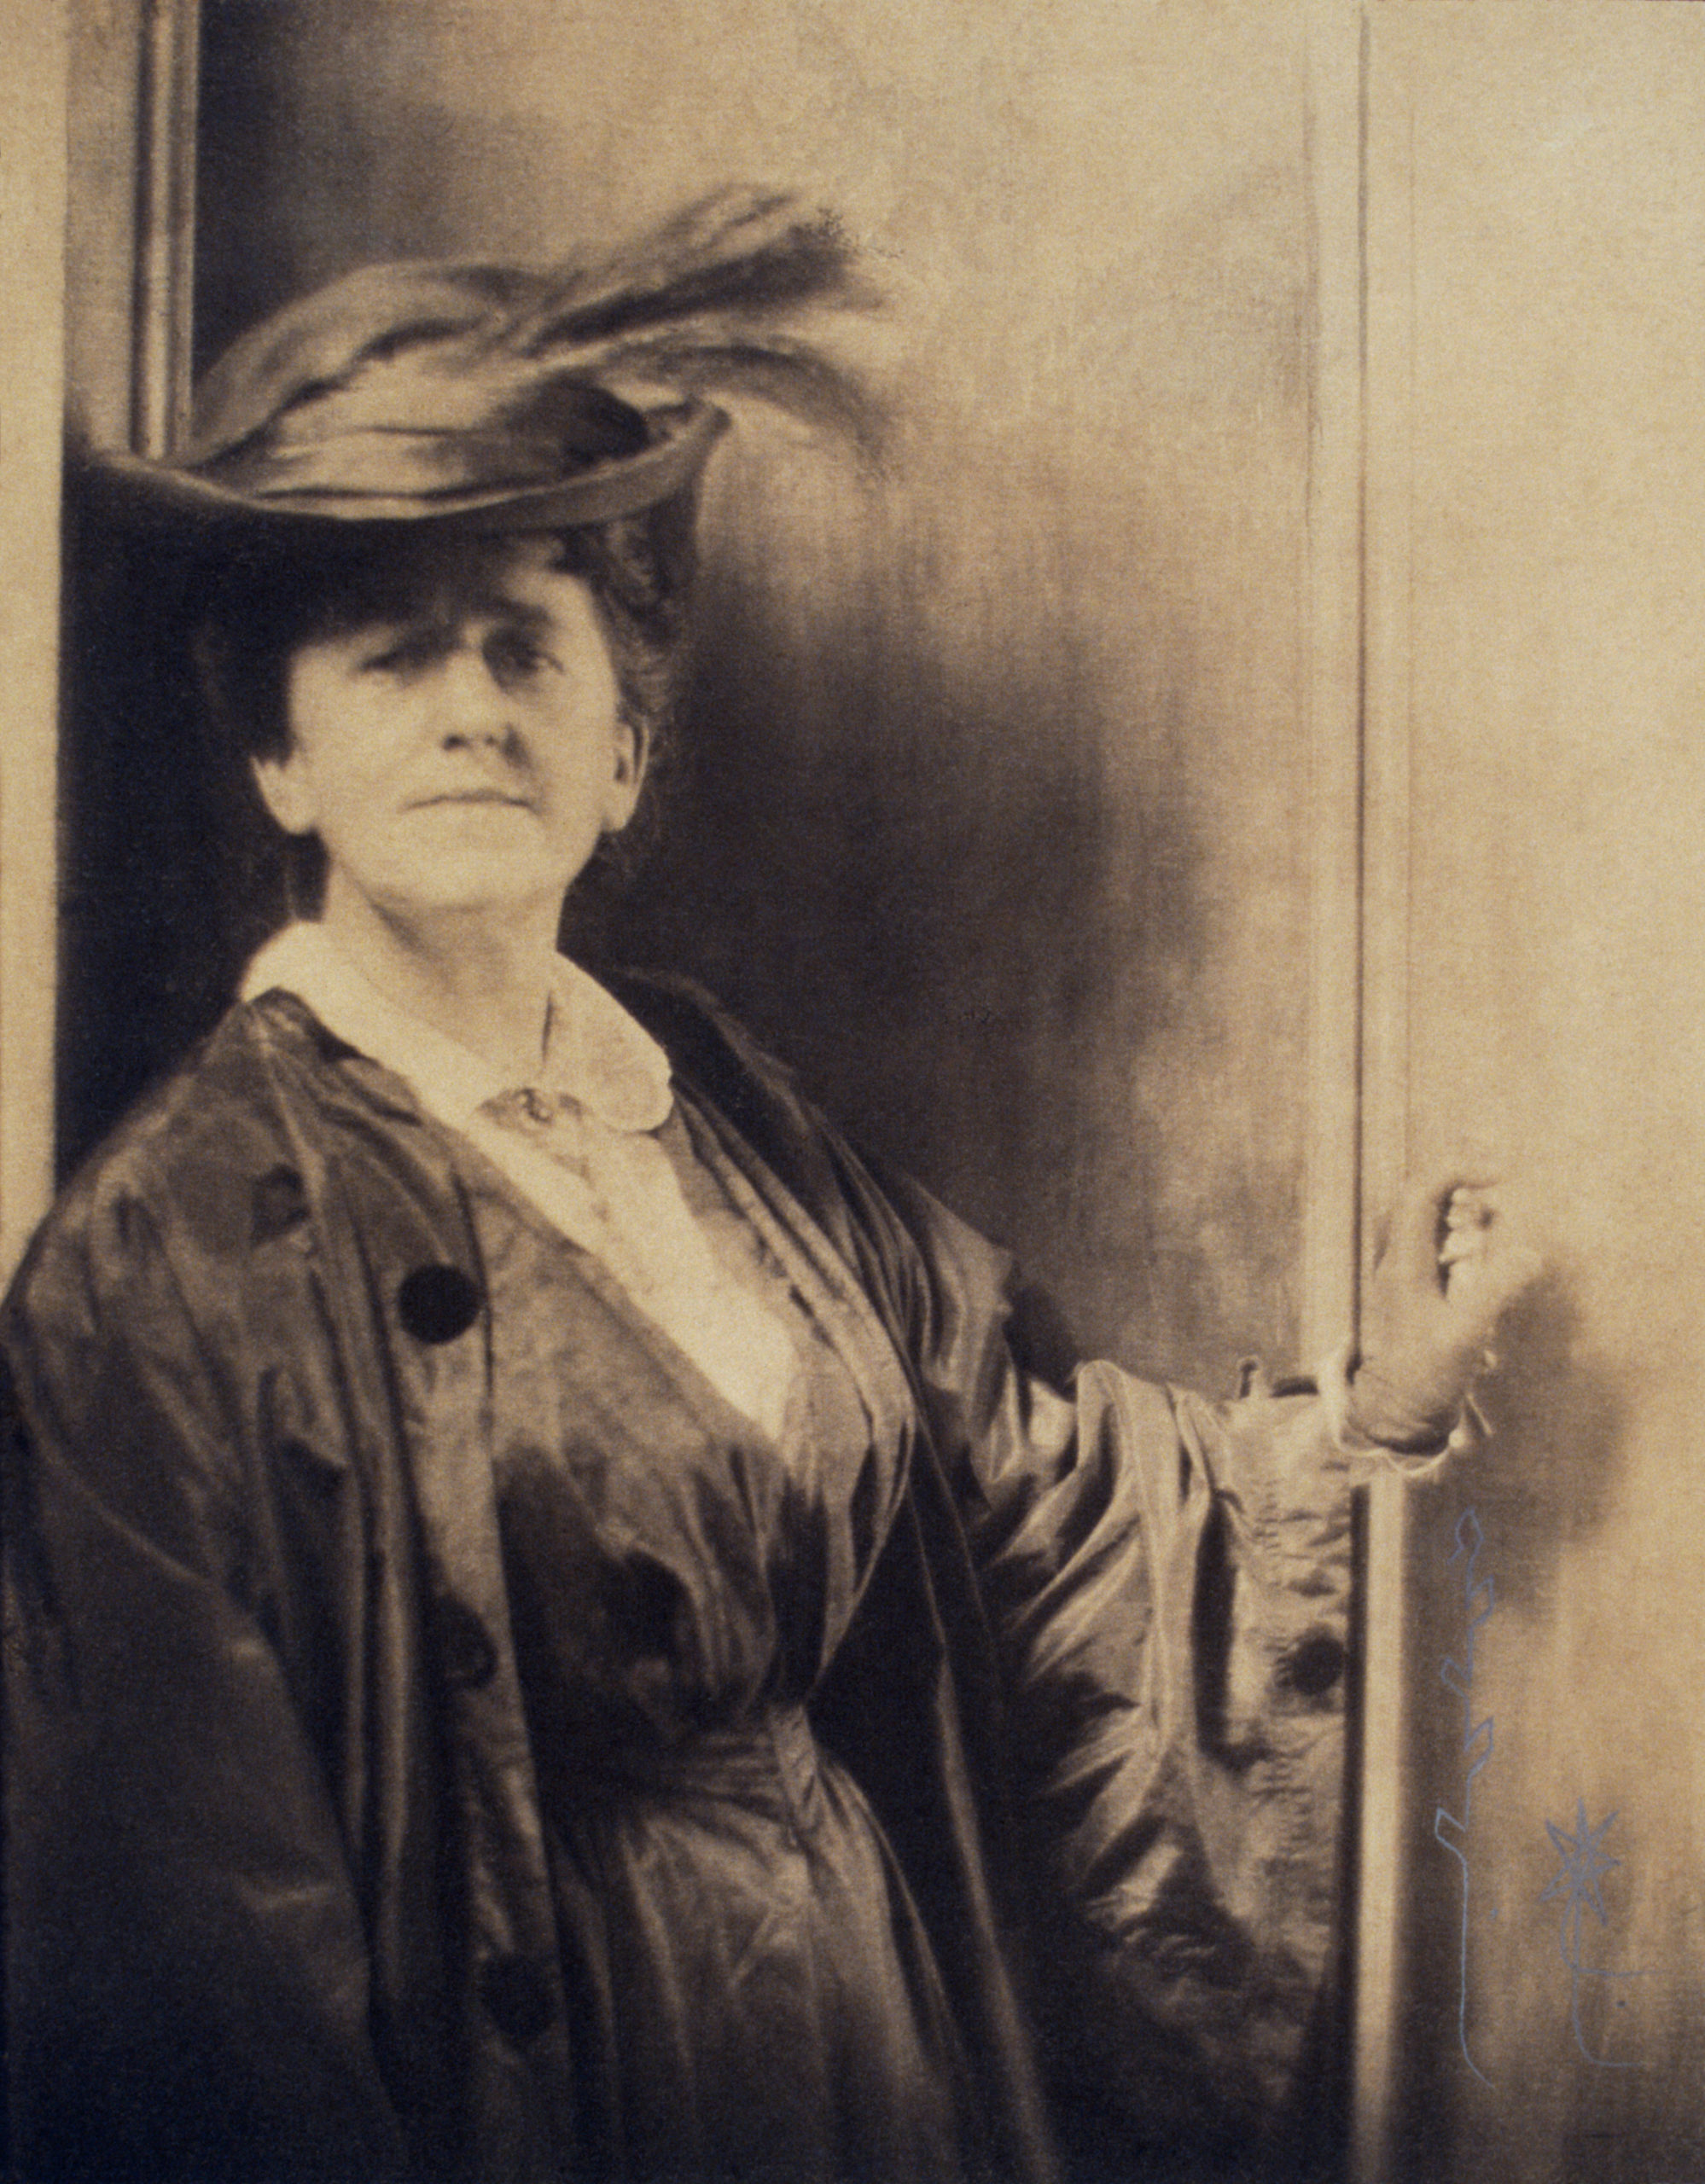 A sepia-toned photograph of a light-skinned adult woman. Standing against a wall, she dons a large black hat with a feather in the brim. She wears a dark dress with a white collared shirt and a long baggy dark coat. She places her left hand on the wall beside her.